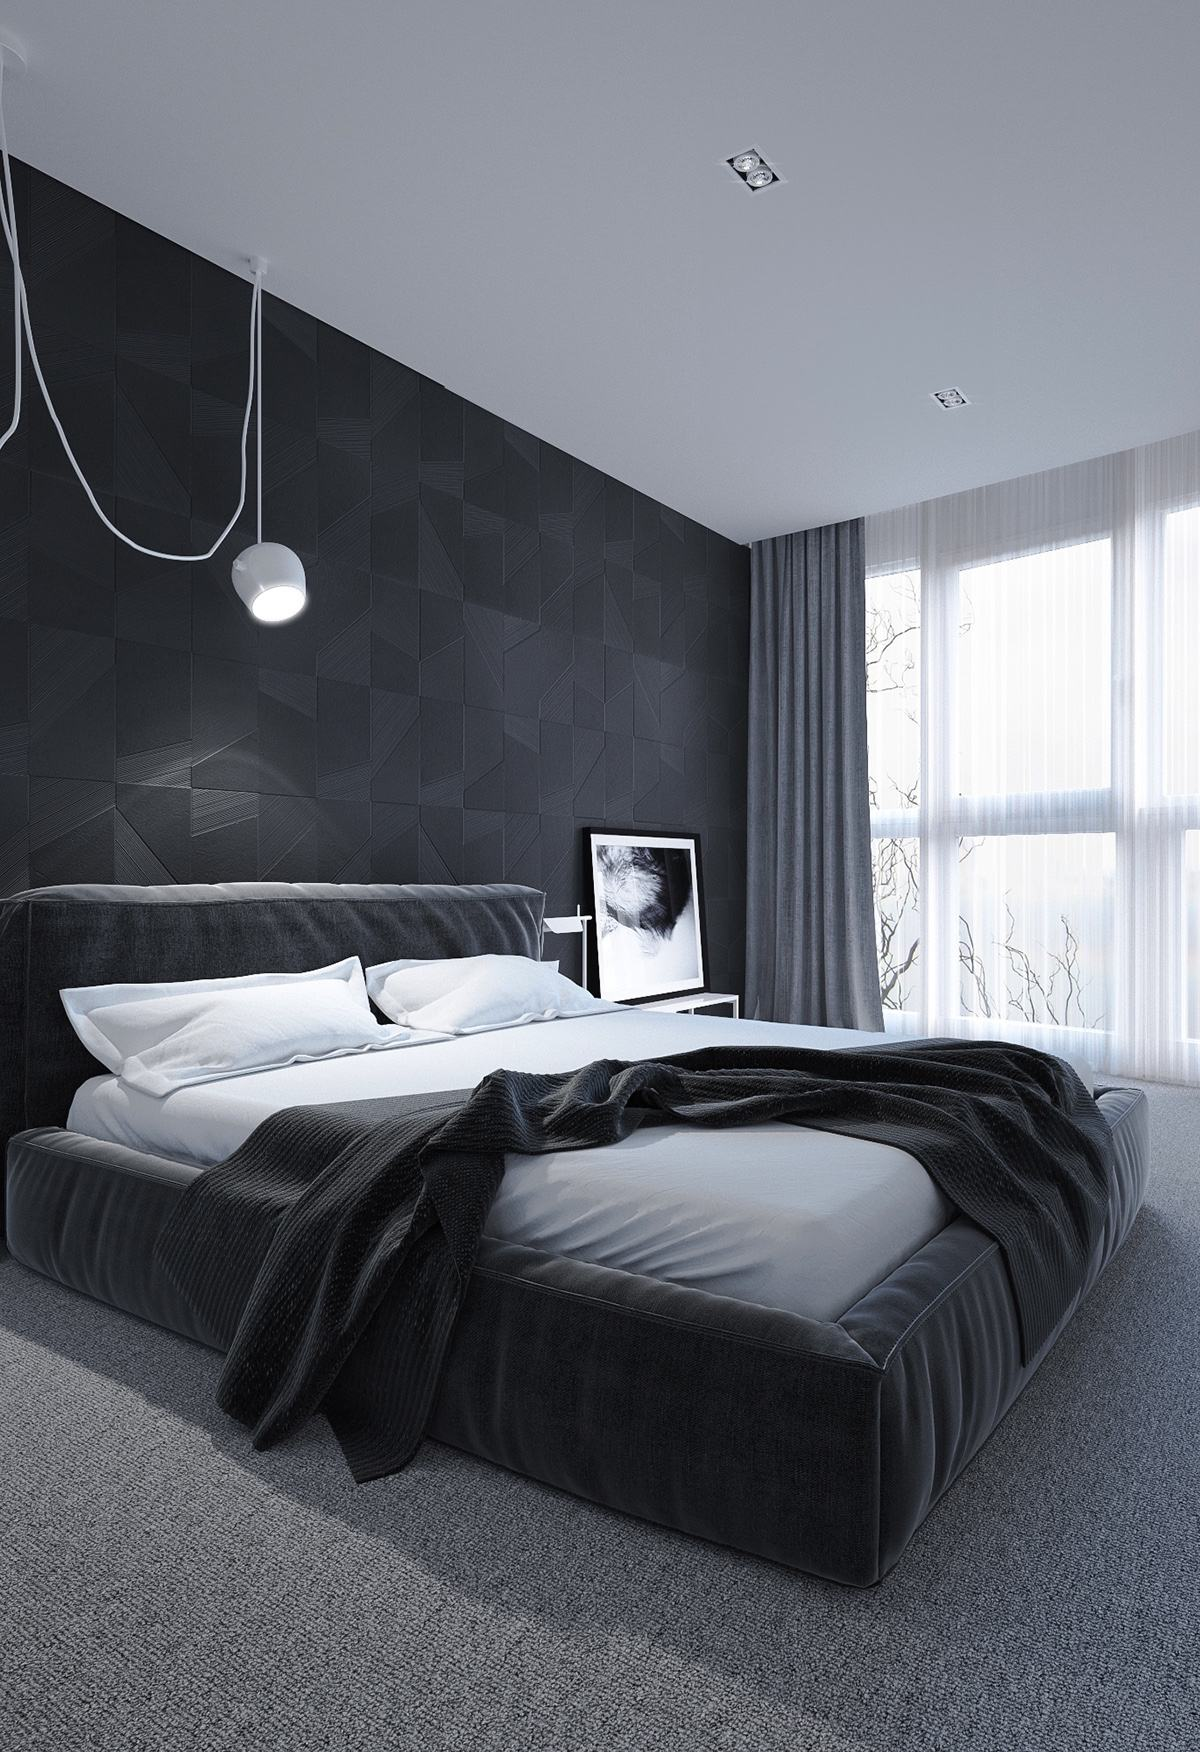 6 dark bedrooms designs to inspire sweet dreams Black and white room designs